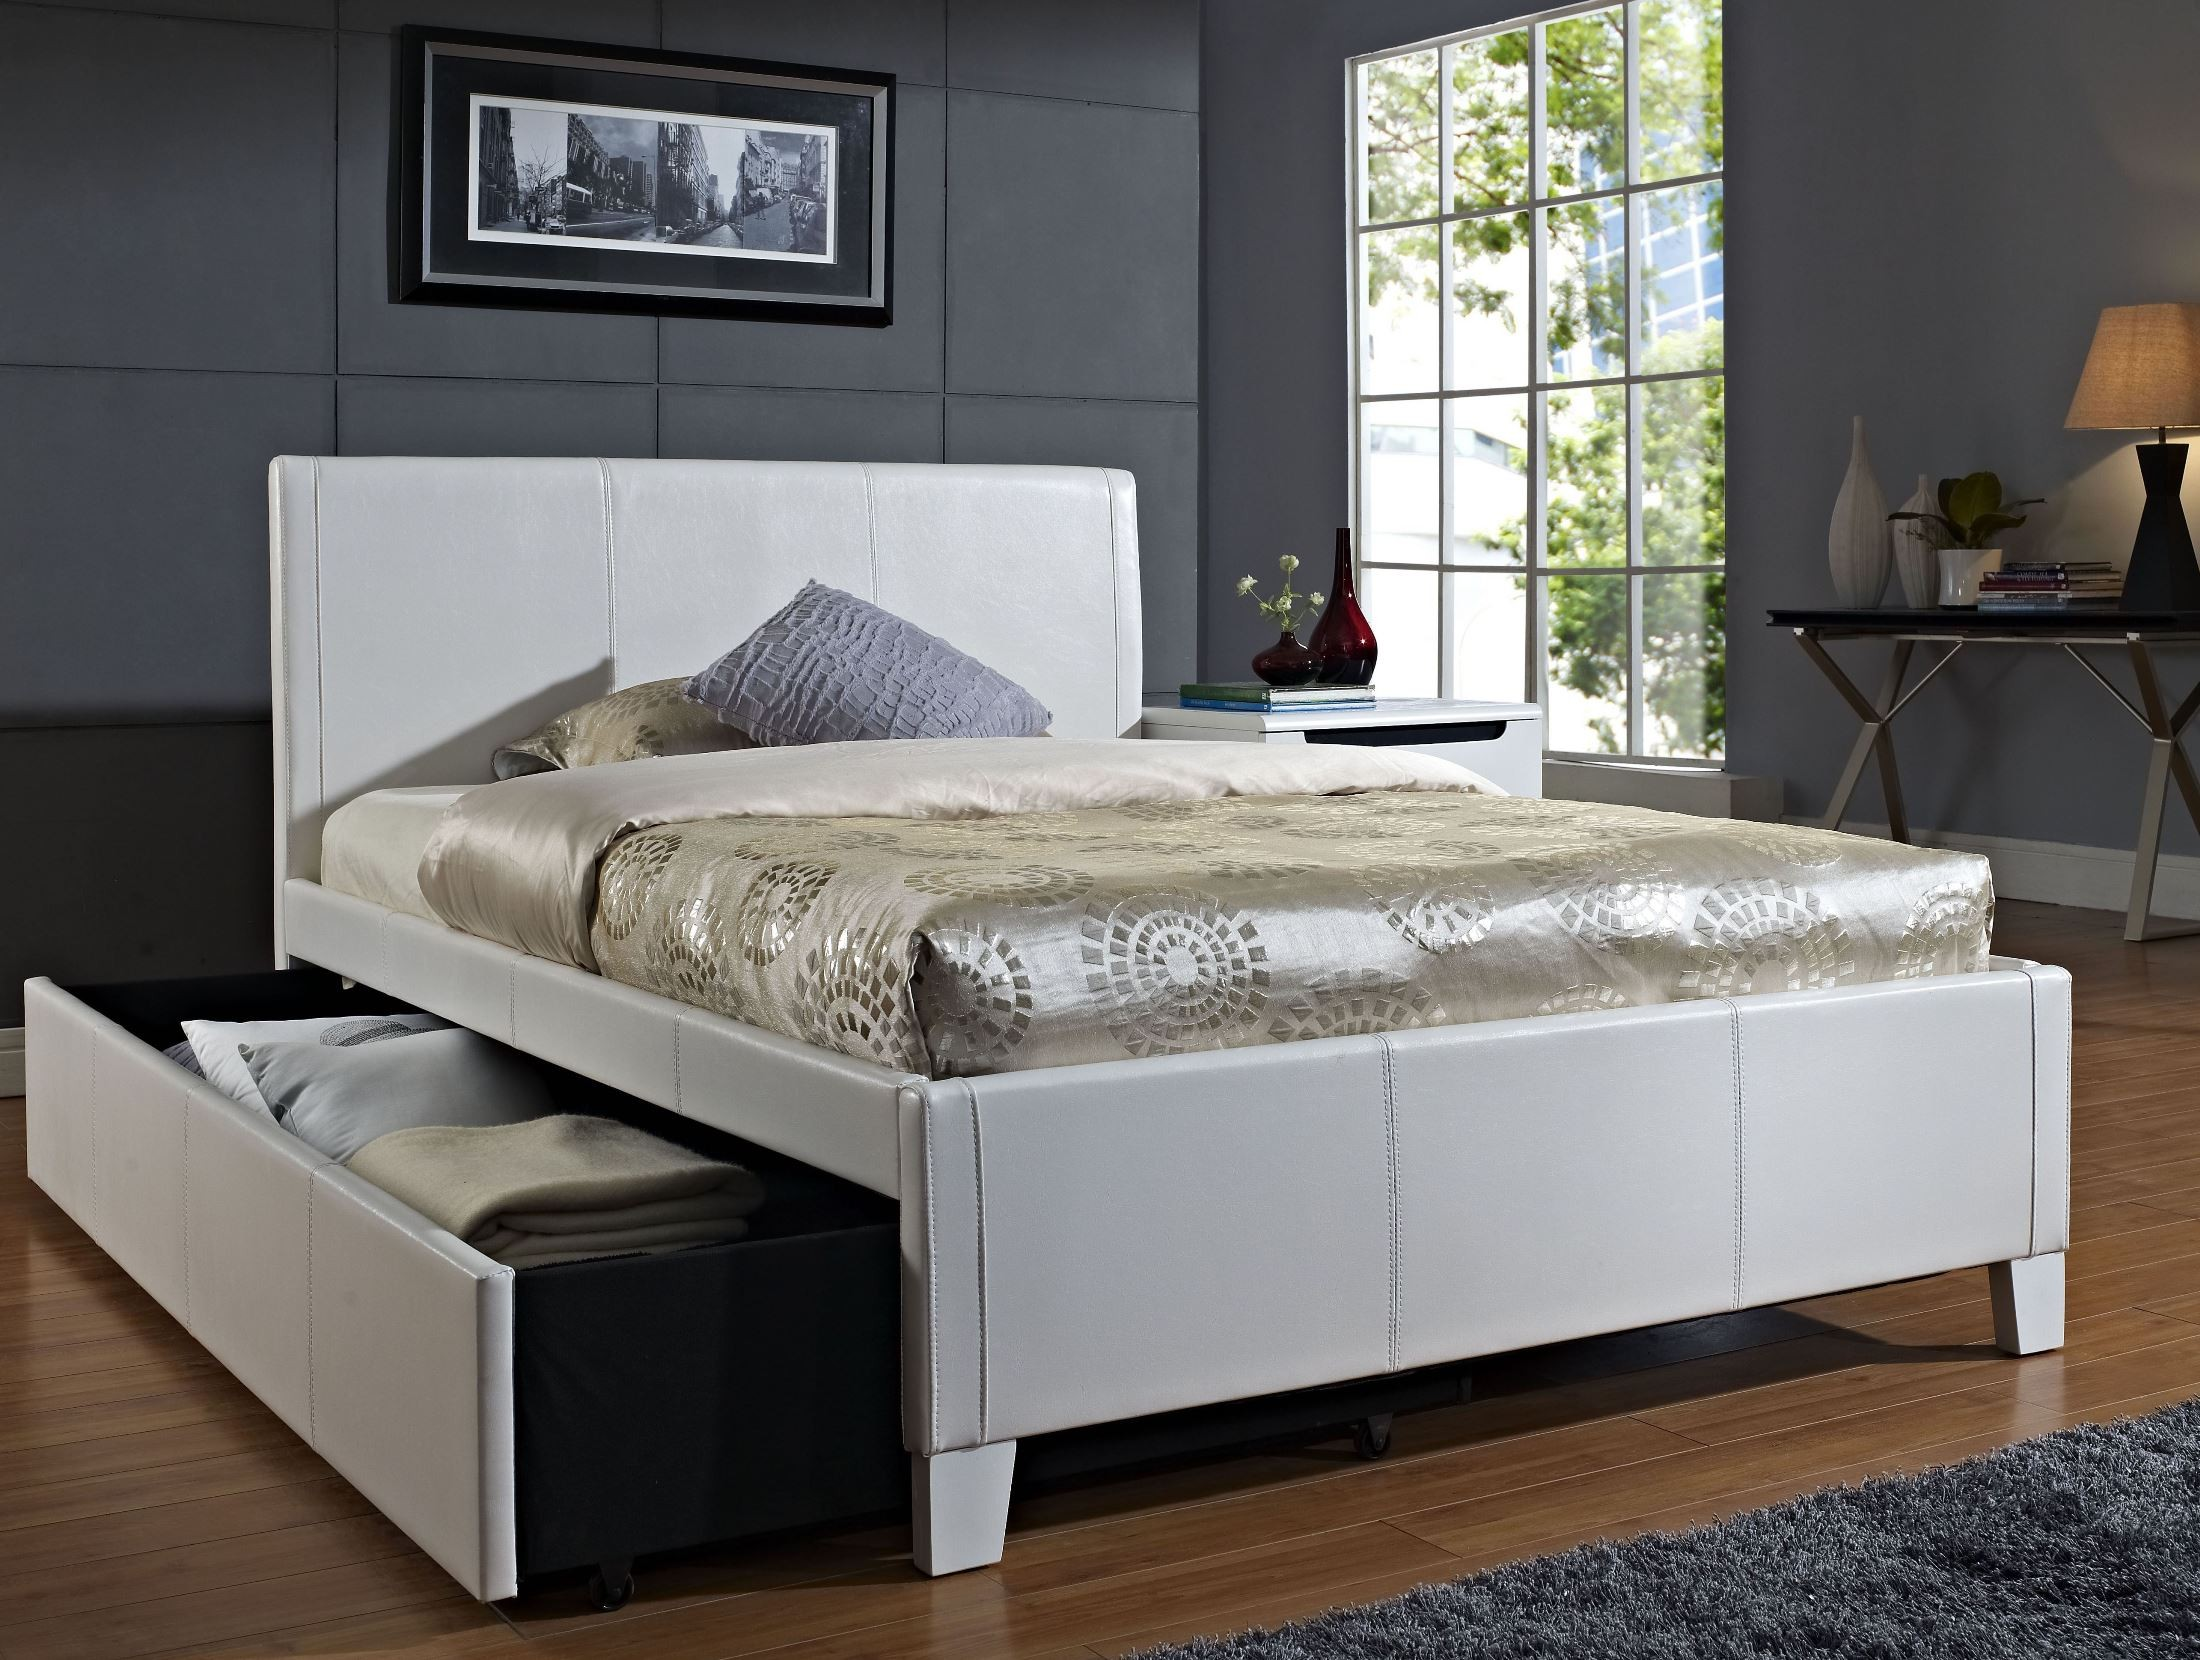 White Trundle Bed Fantasia White Full Upholstered Trundle Bed From Standard